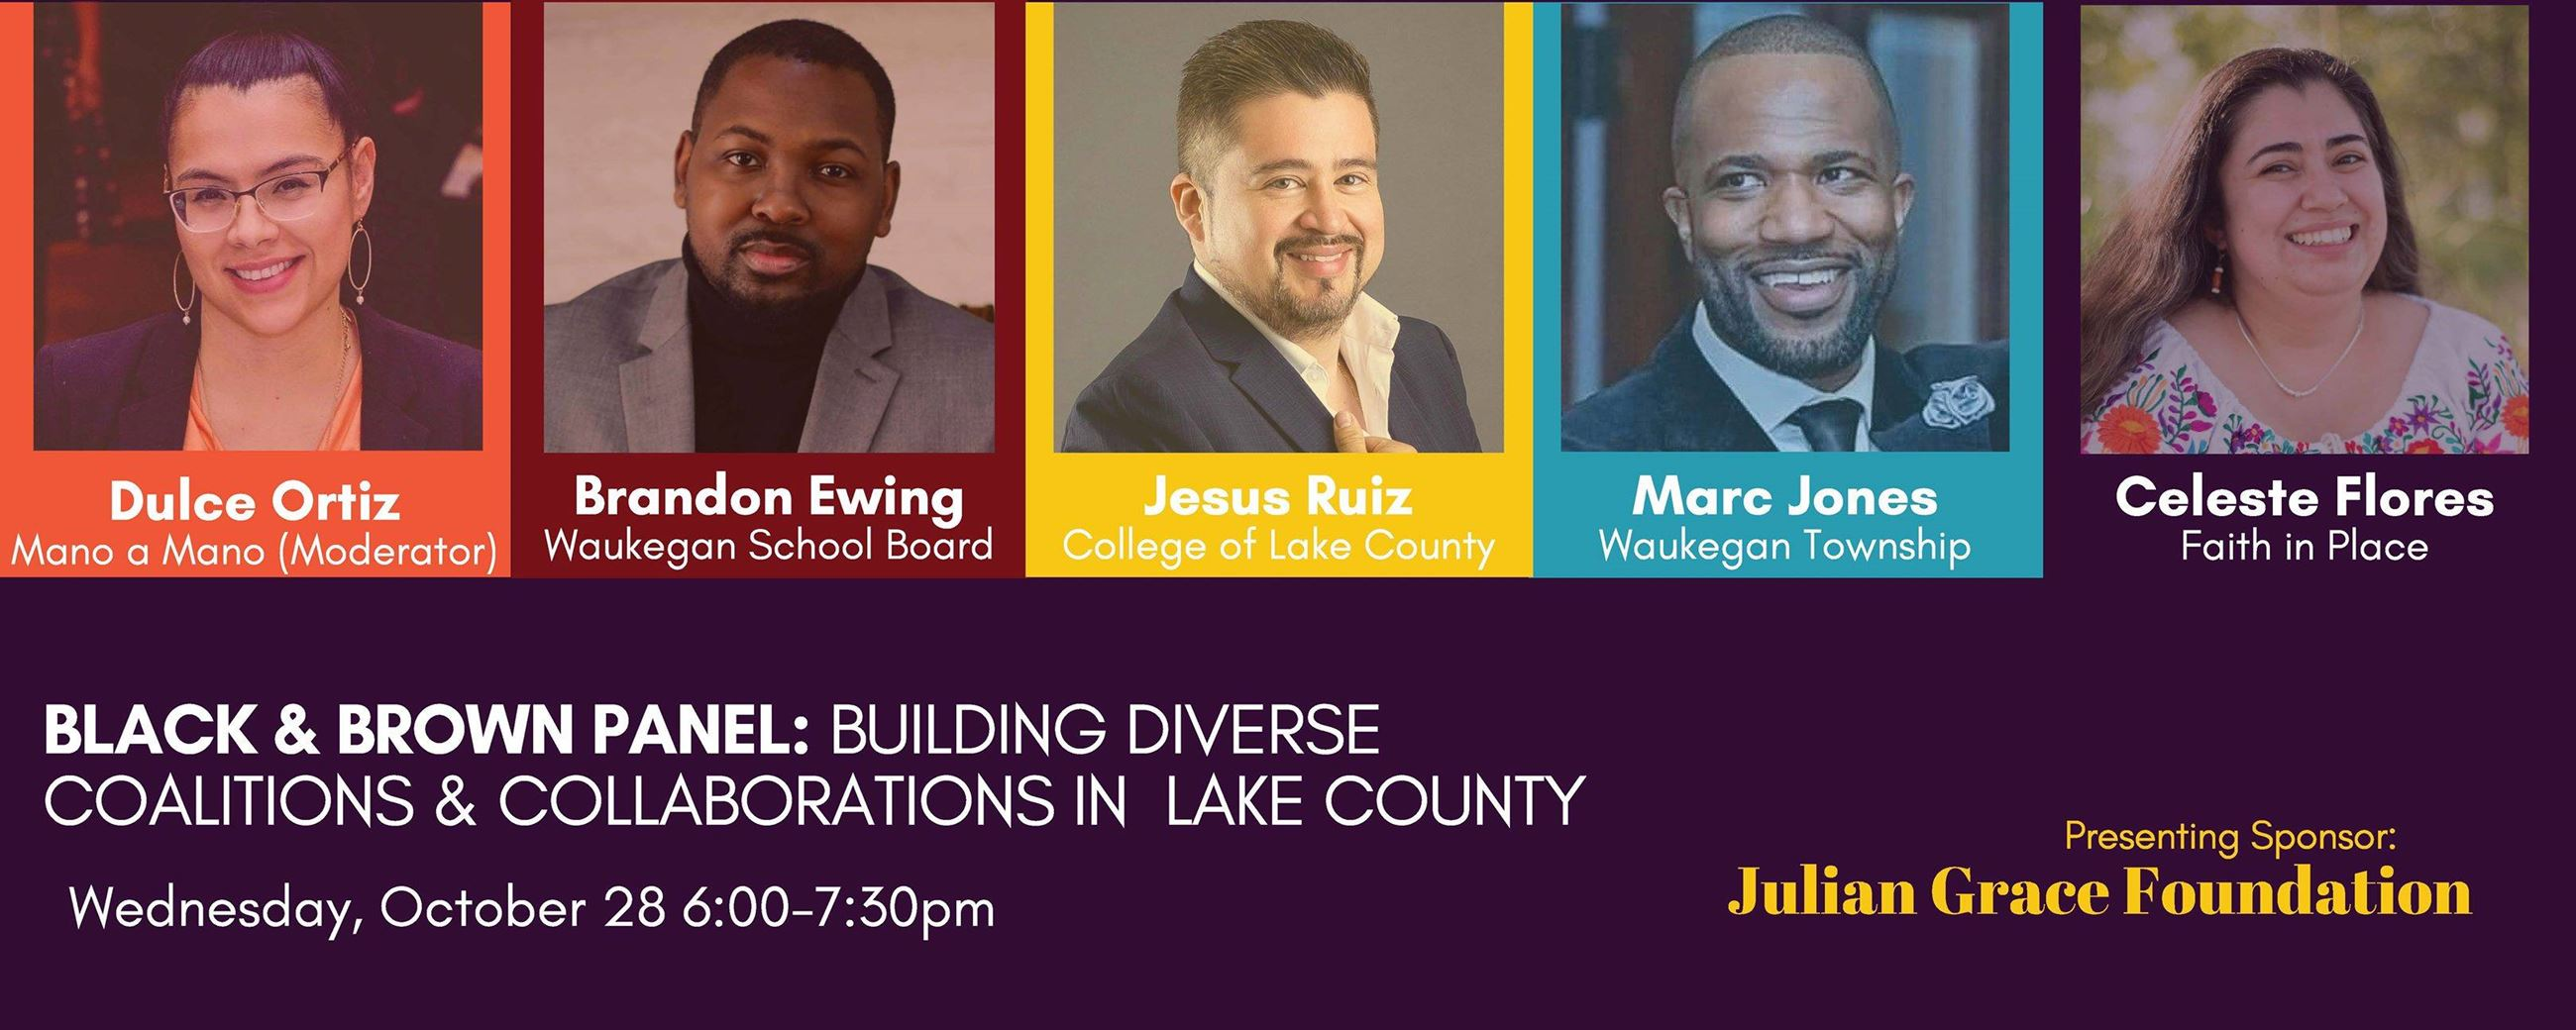 mano a mano building diverse coalitions and collaborations in lake county